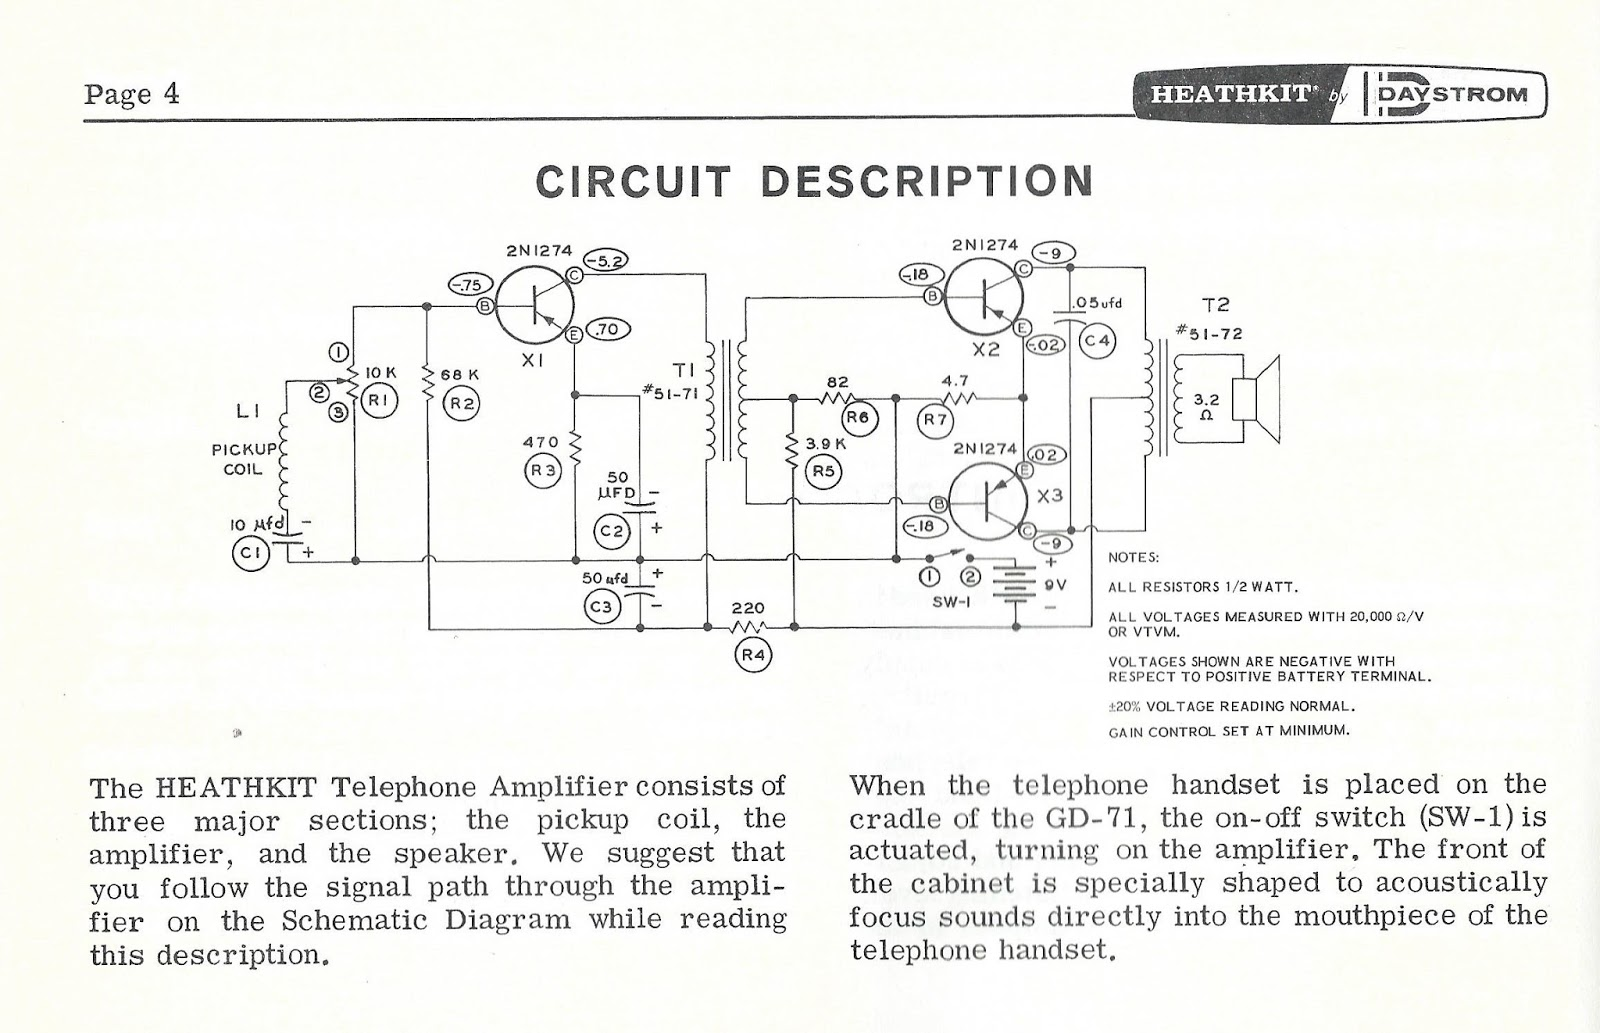 ... the typical circuit design except for Ampliphone and Heathkit amps  which had 1 less transistor driving the first transformer. A few are rated  for 9 volt ...